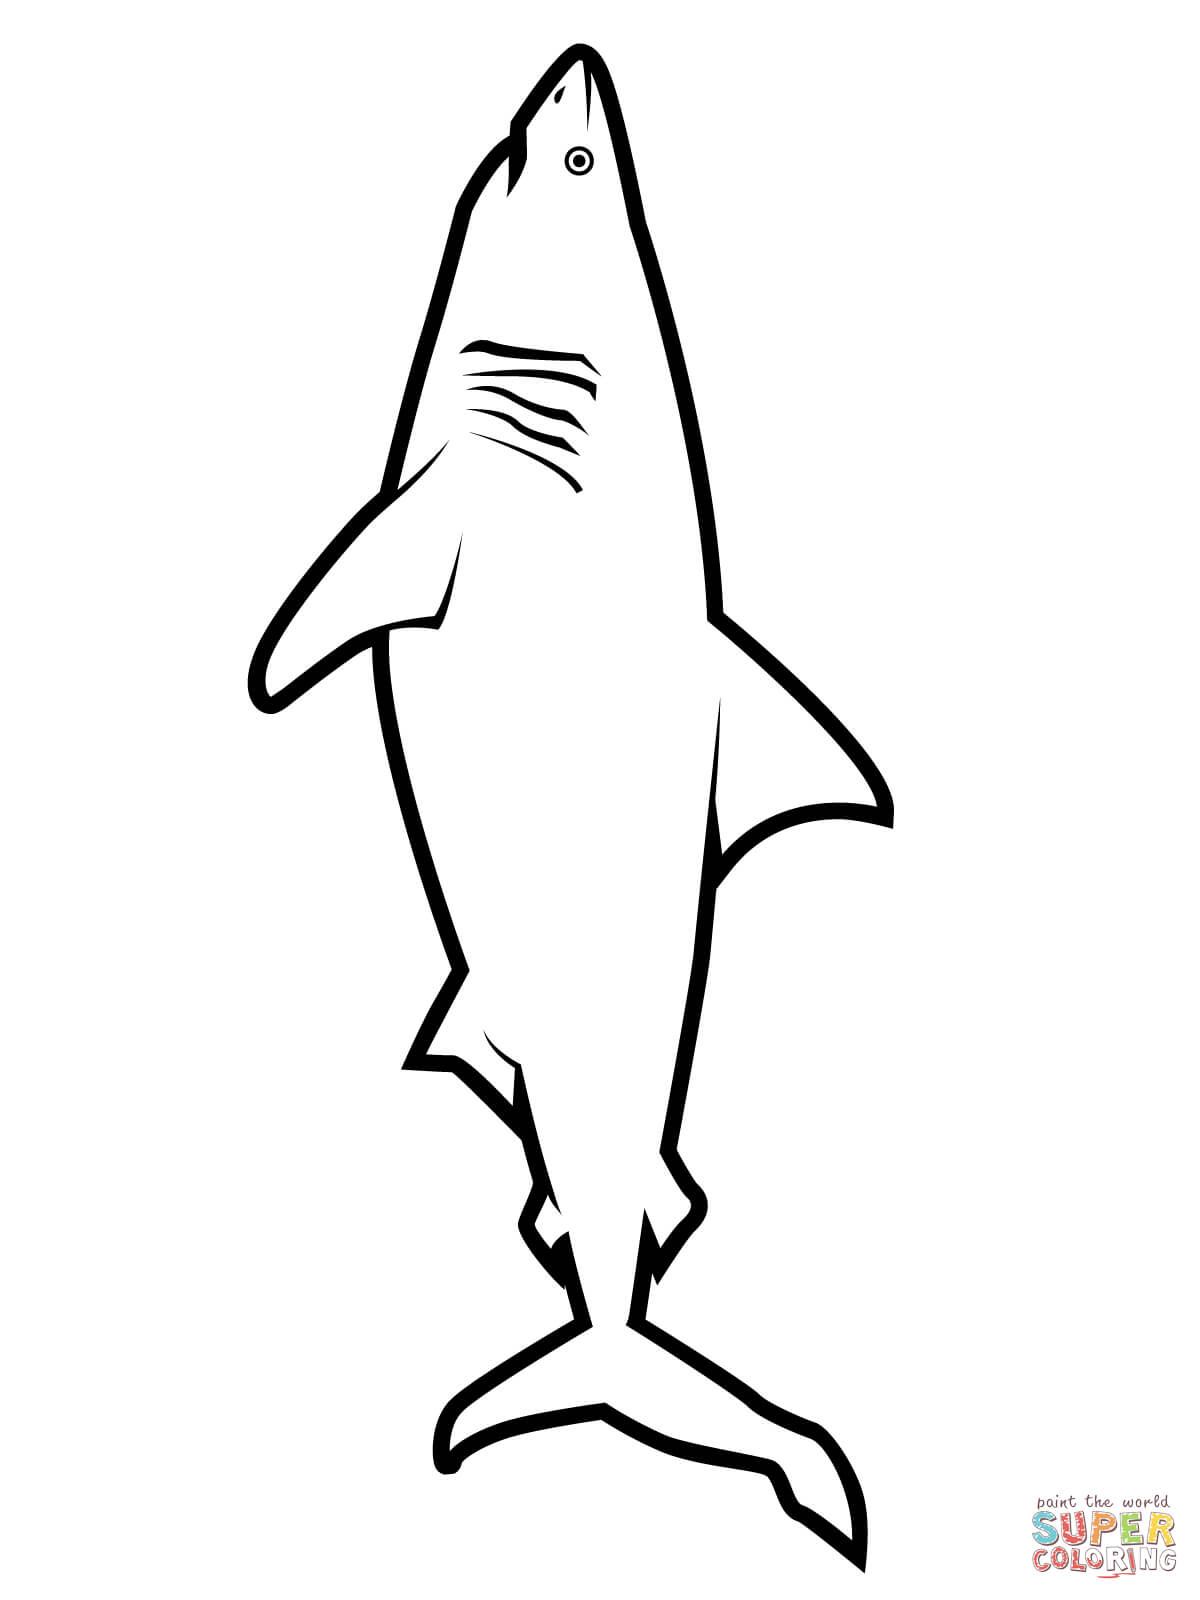 great white shark coloring page hungry shark world coloring pages at getdrawings free page great shark white coloring